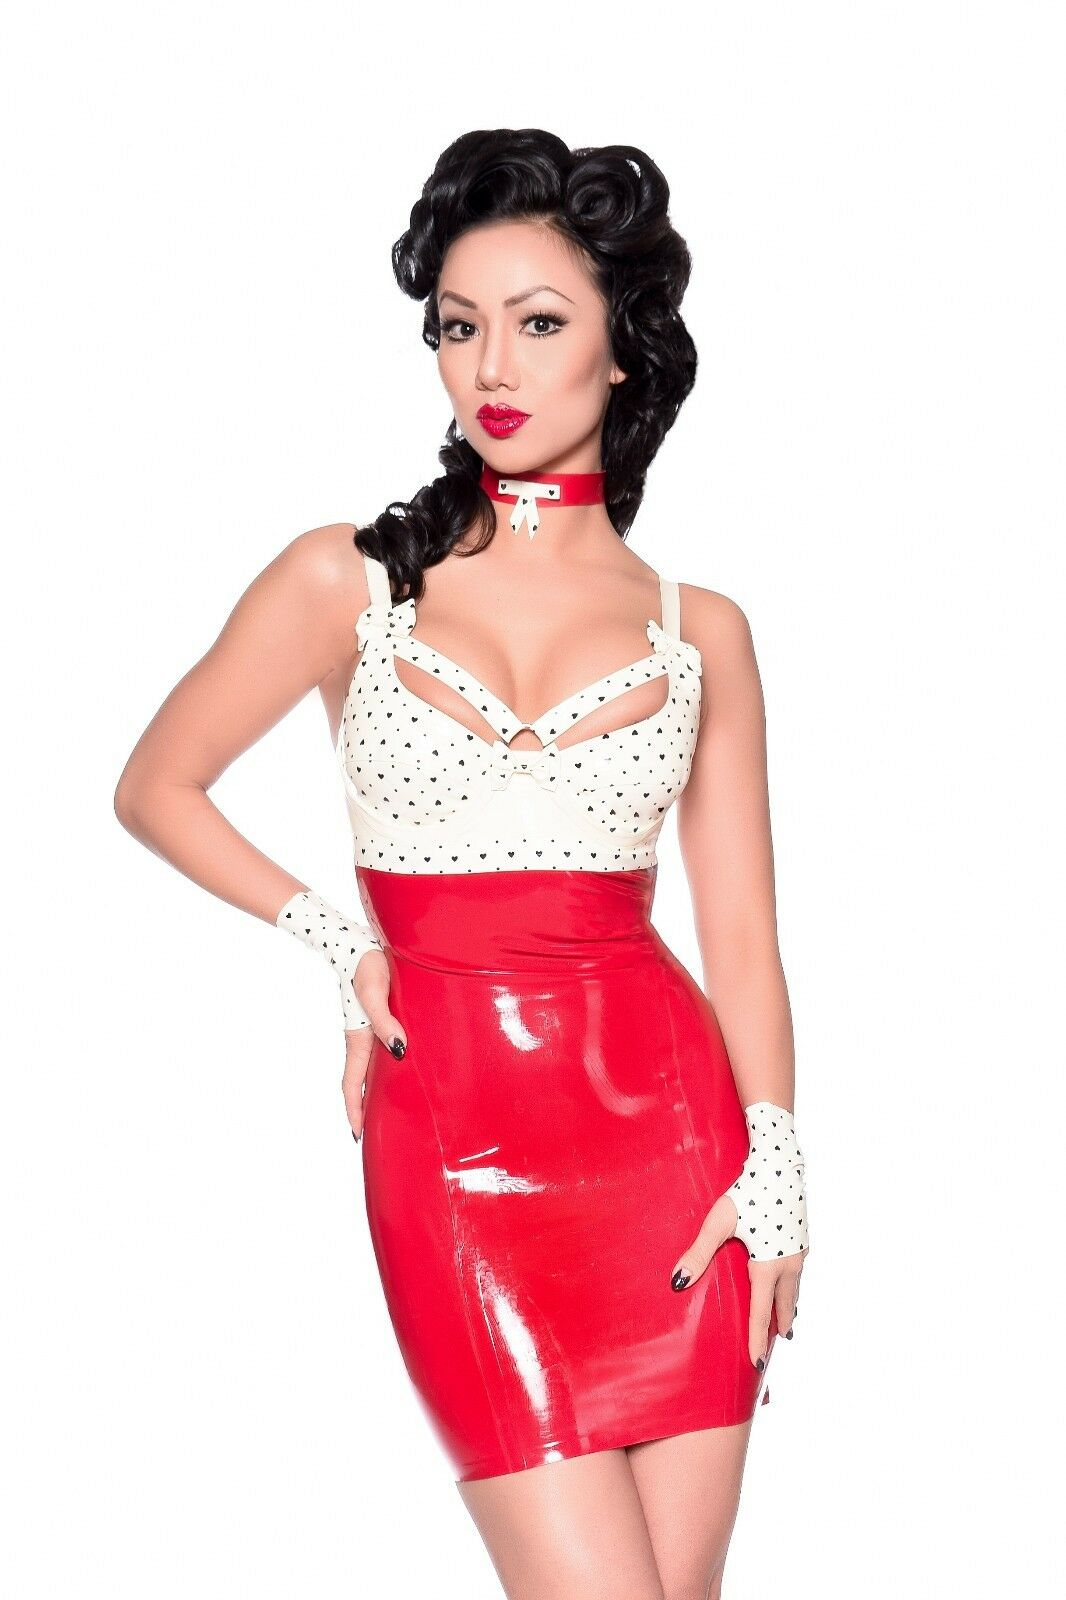 R1724 Rubber Latex DRESS Couture Shown Fetishwear 10 UK SECONDS RRP